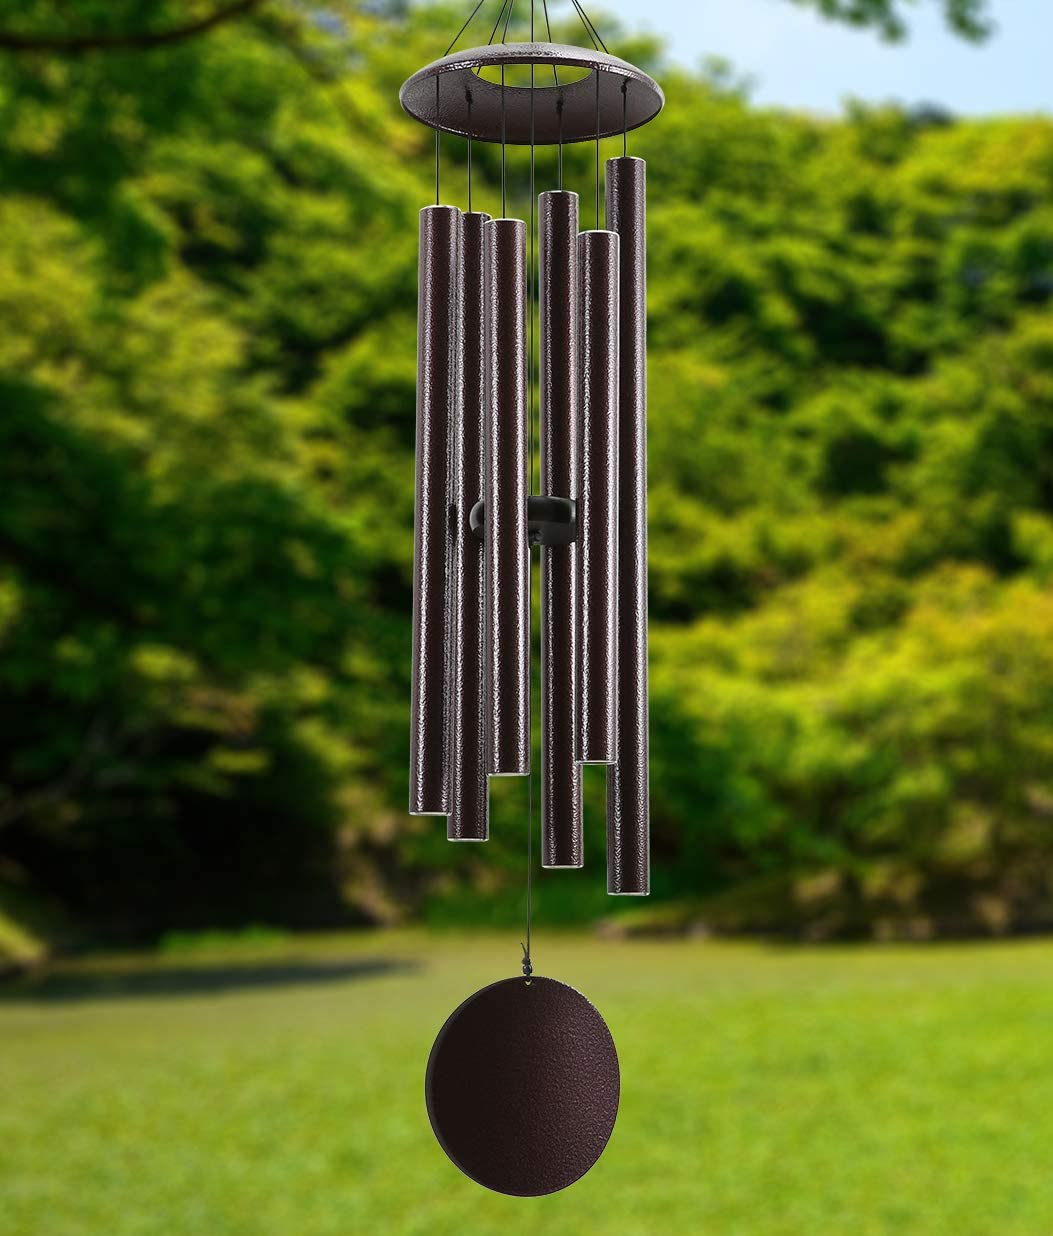 ELYXWORK Large Wind Chimes Outdoor Deep Tone 45 Inch, Memorial Windchimes with 6 Heavy Tubes Tuned Soothing Melody as Sympathy Gift, Home, Patio, Garden Decor, Bronze : Garden & Outdoor